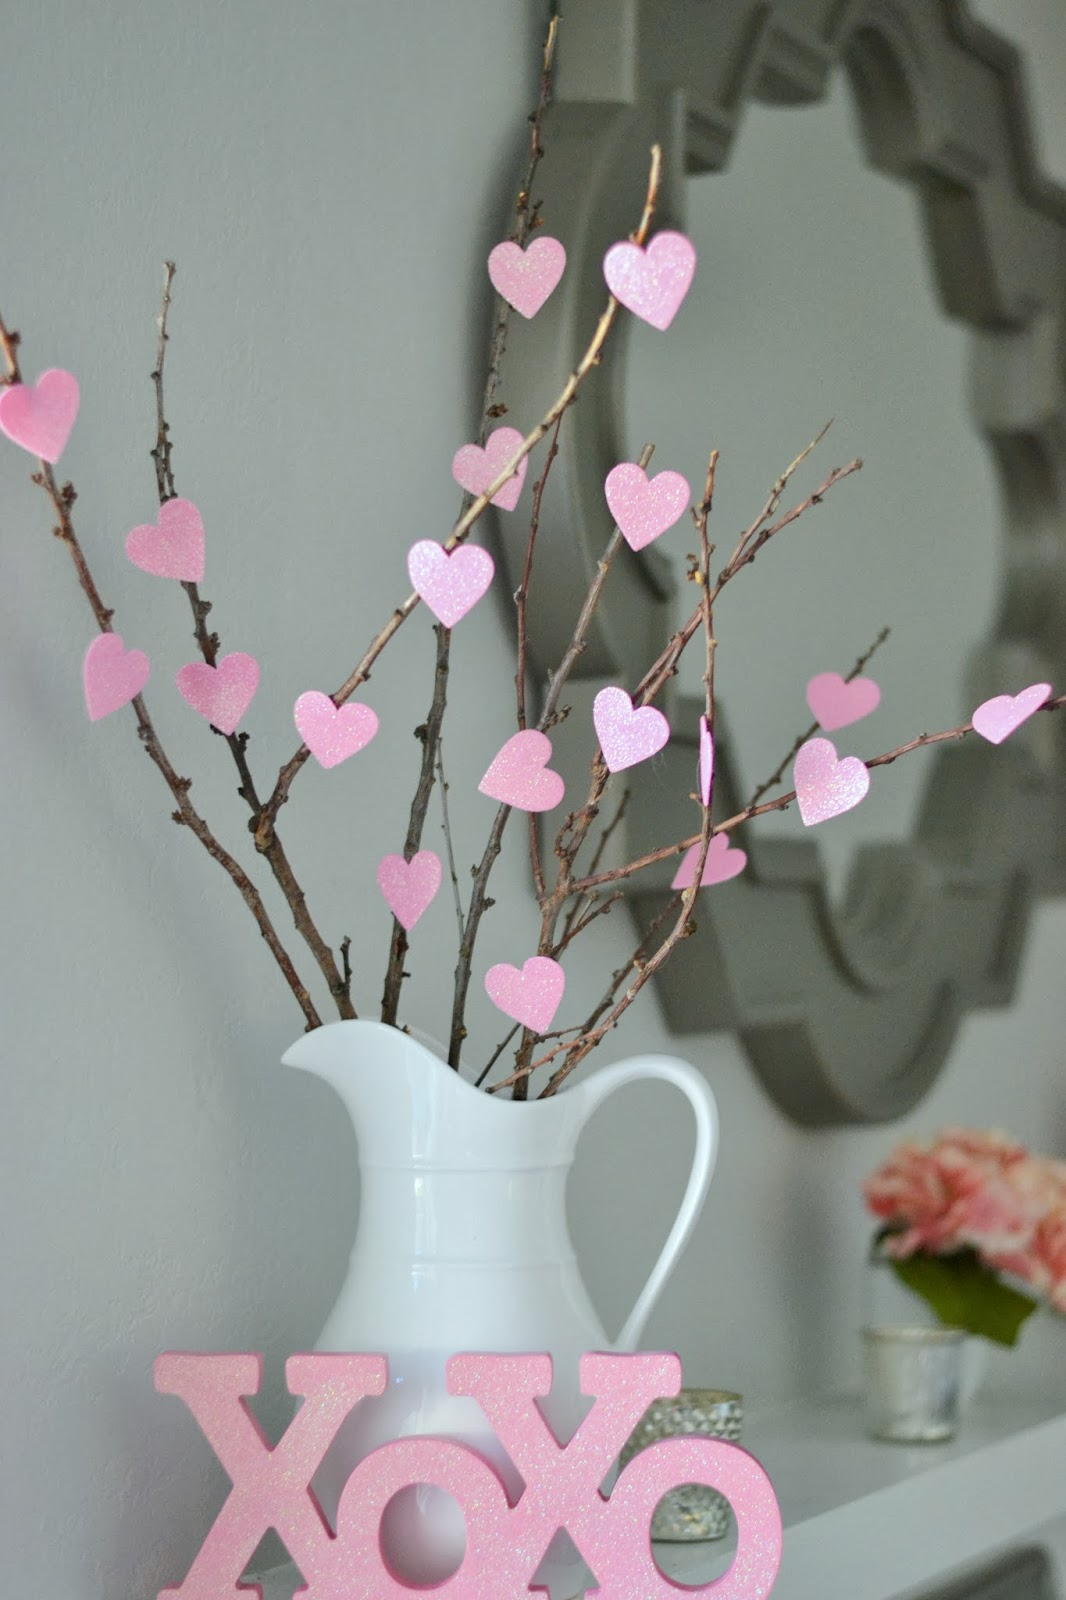 Best Valentines Decorations For Home 12